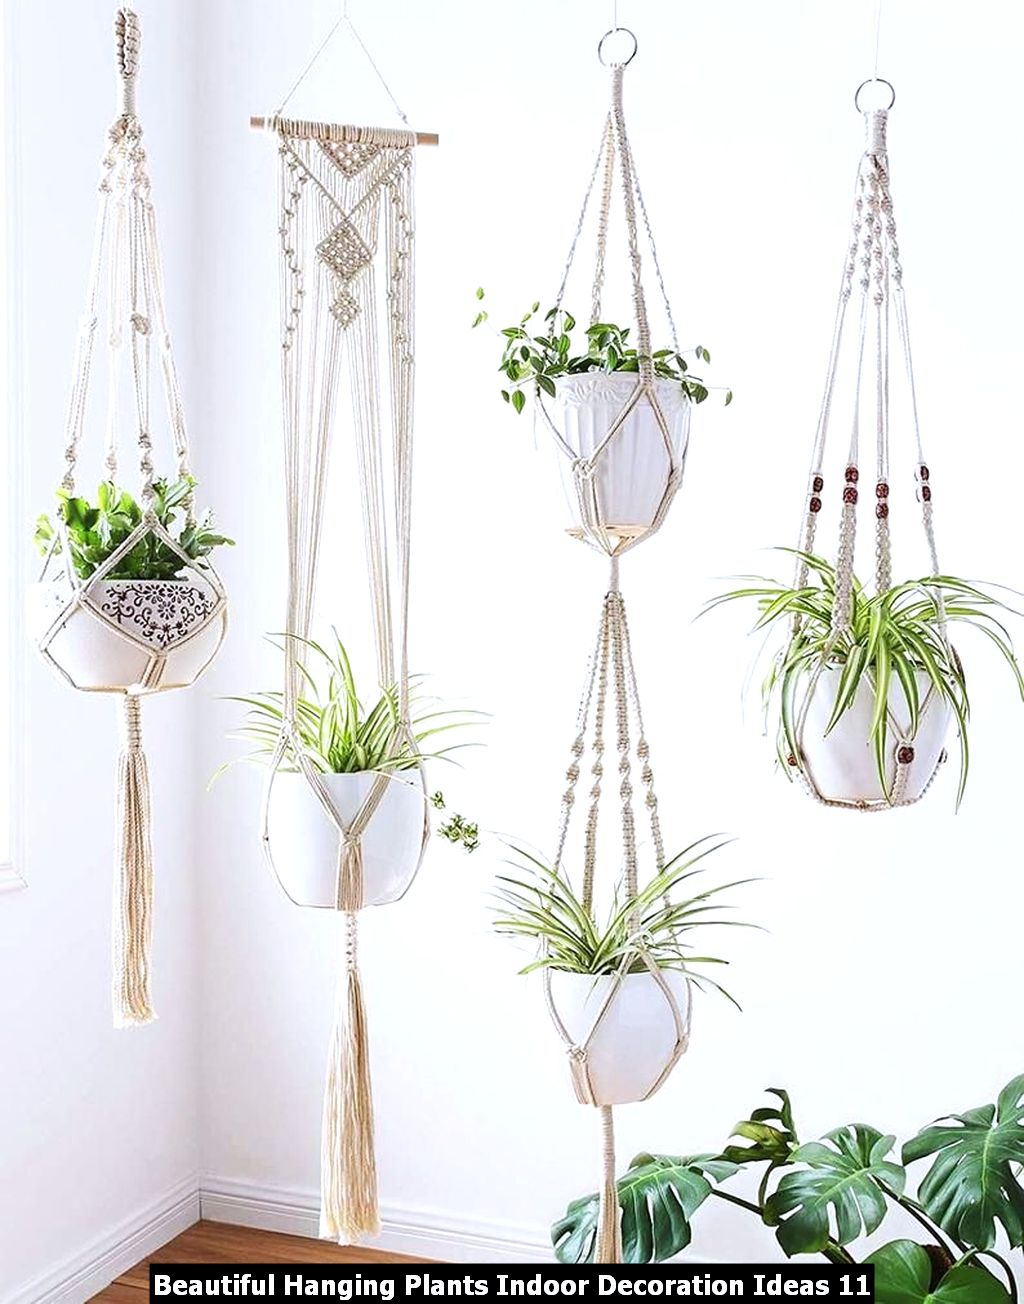 Beautiful Hanging Plants Indoor Decoration Ideas 11